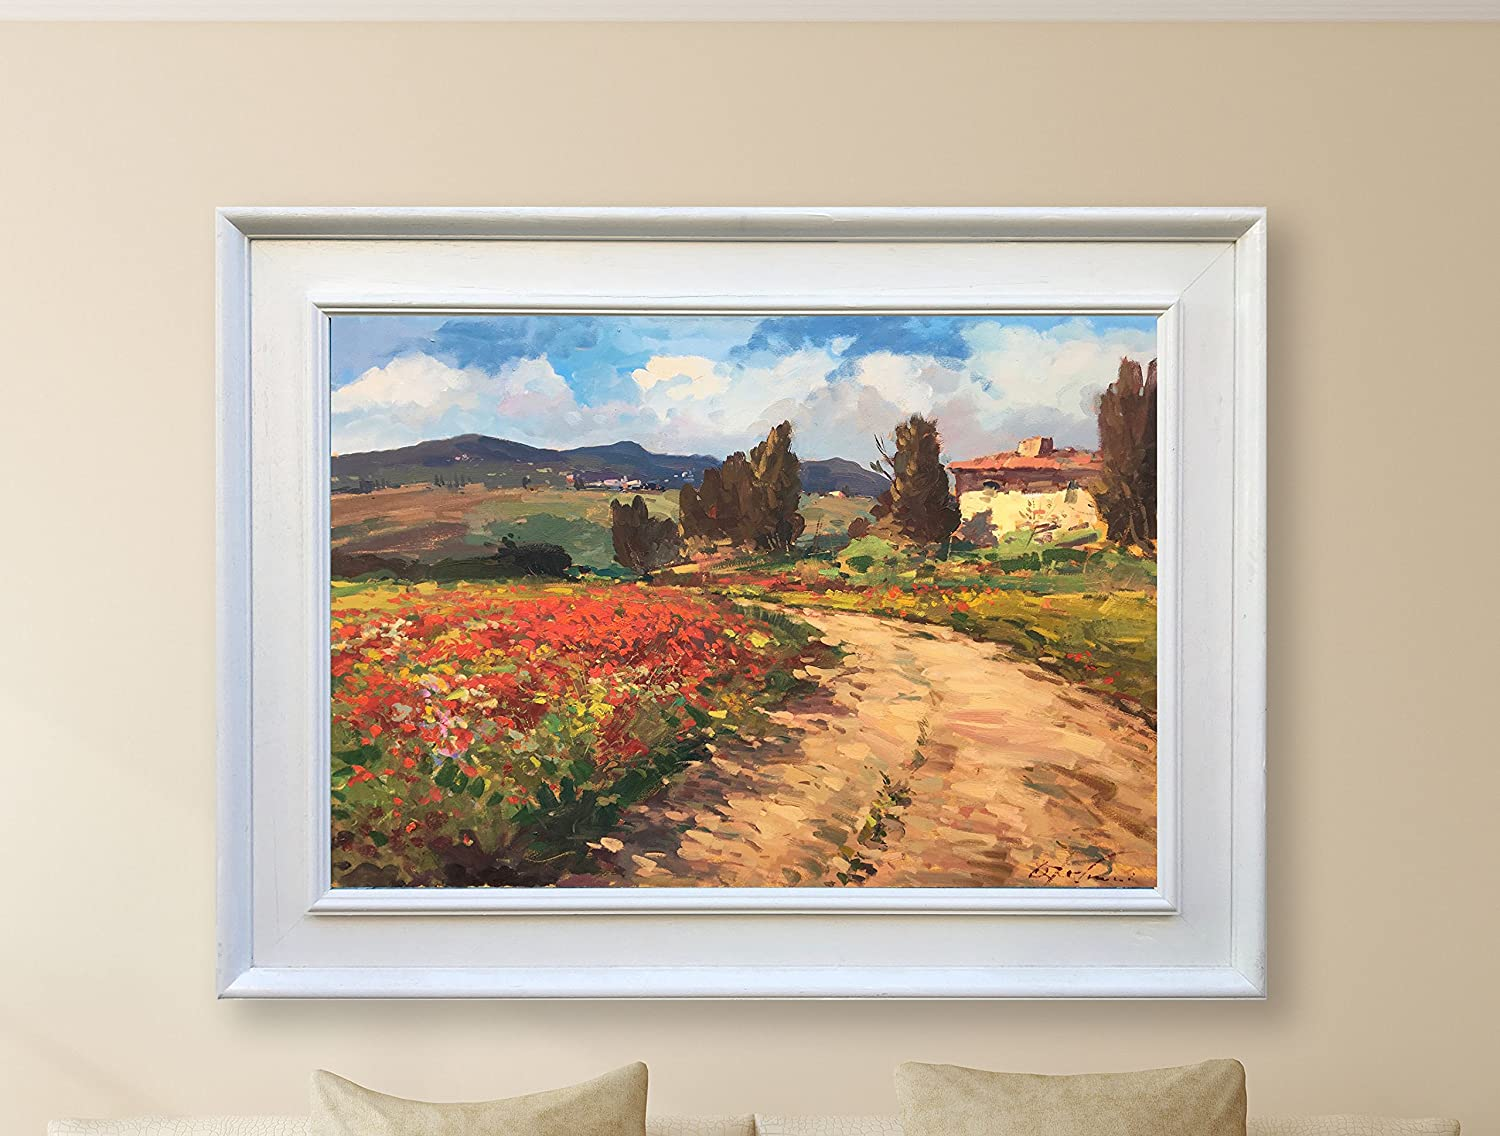 Tuscany Landscape Painting On Canvas Original Italy Country With Poppies Home Decor Large Wall Art Gift Amazon Ca Handmade